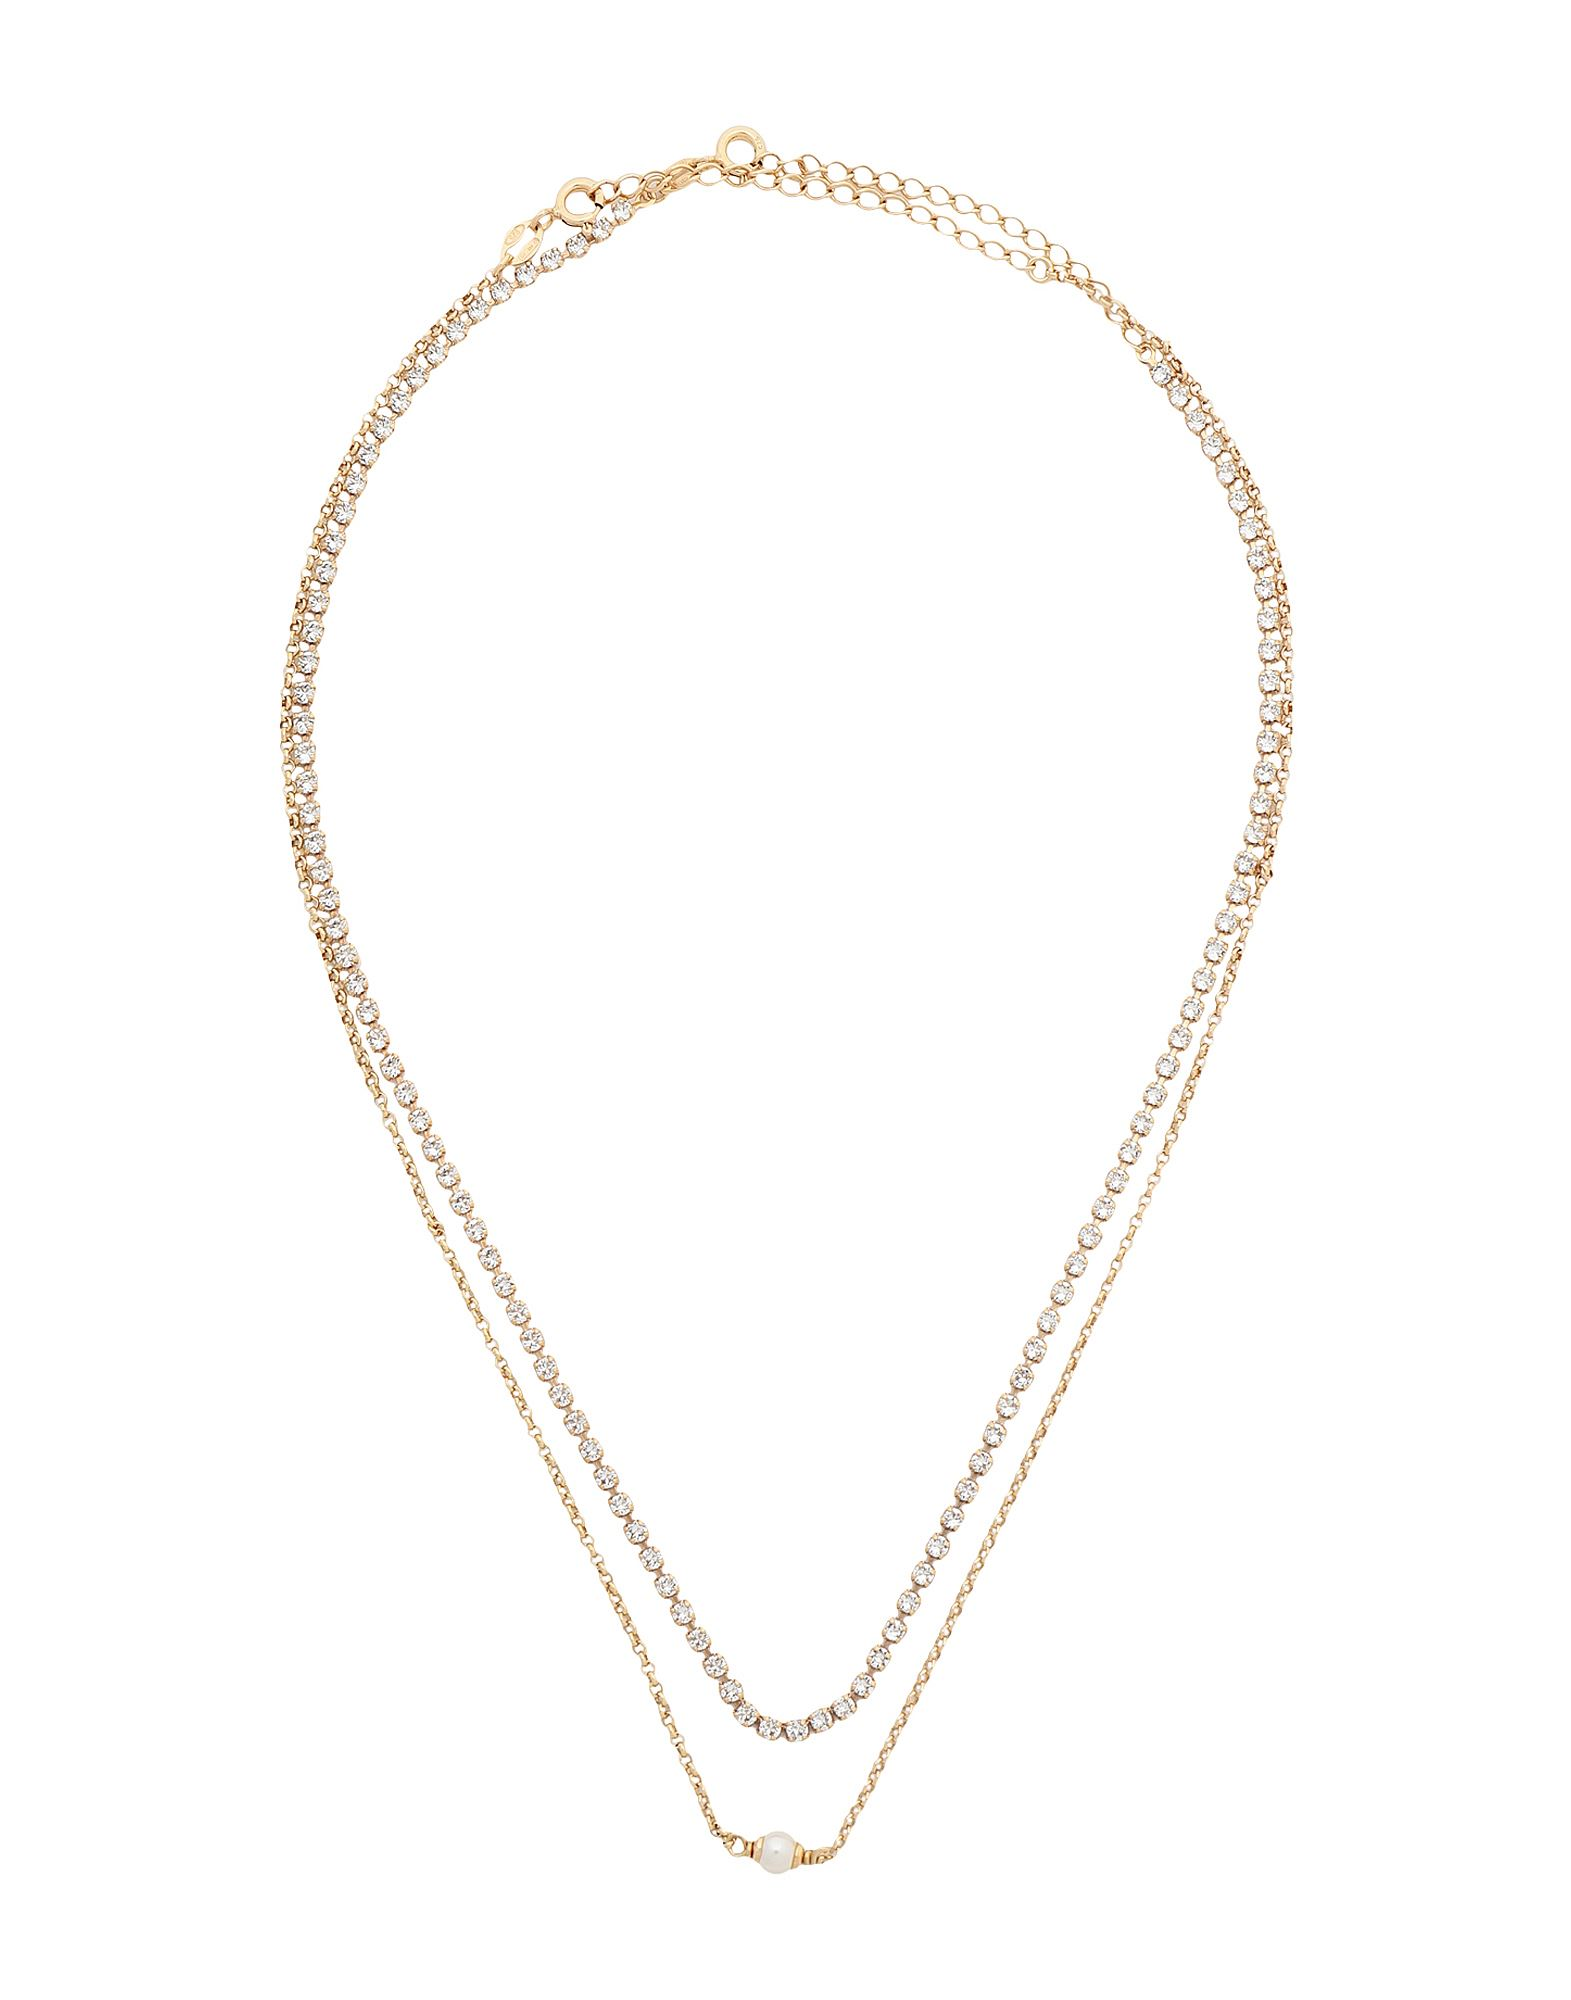 8 by YOOX レディース ネックレス GOLD PLATED 925 SILVER CHARM NECKLACE  SET ゴールド